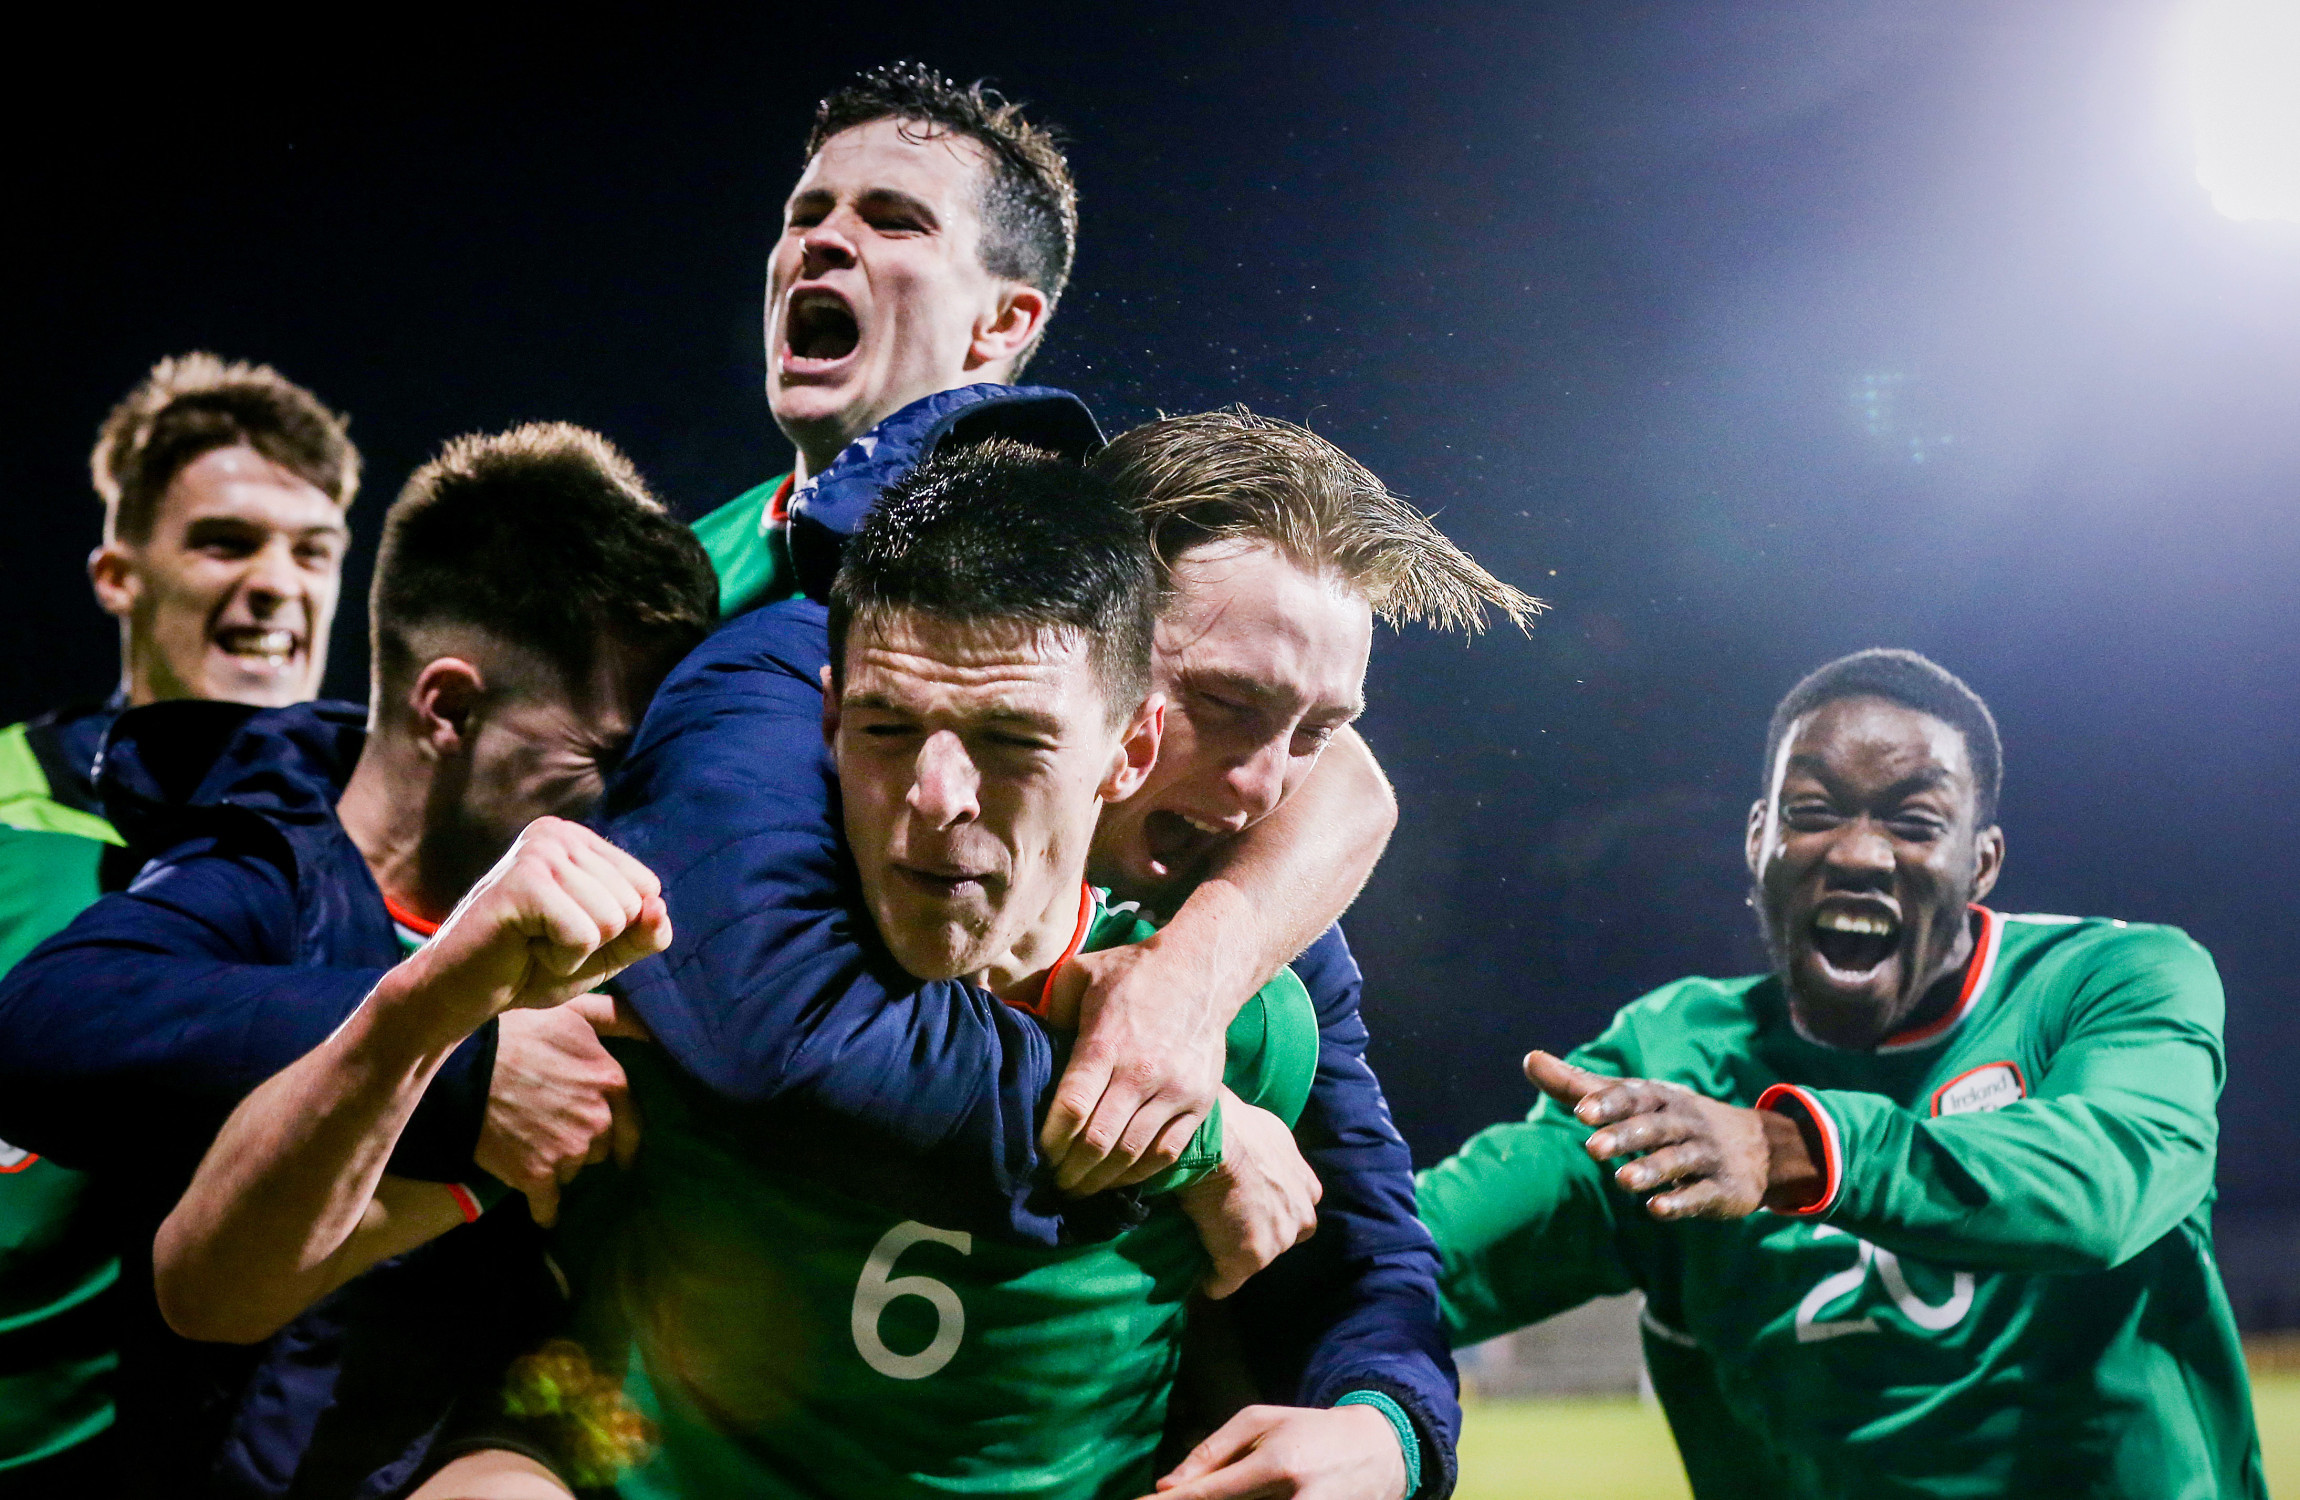 Wild celebrations as Ireland U21s snatch dramatic win